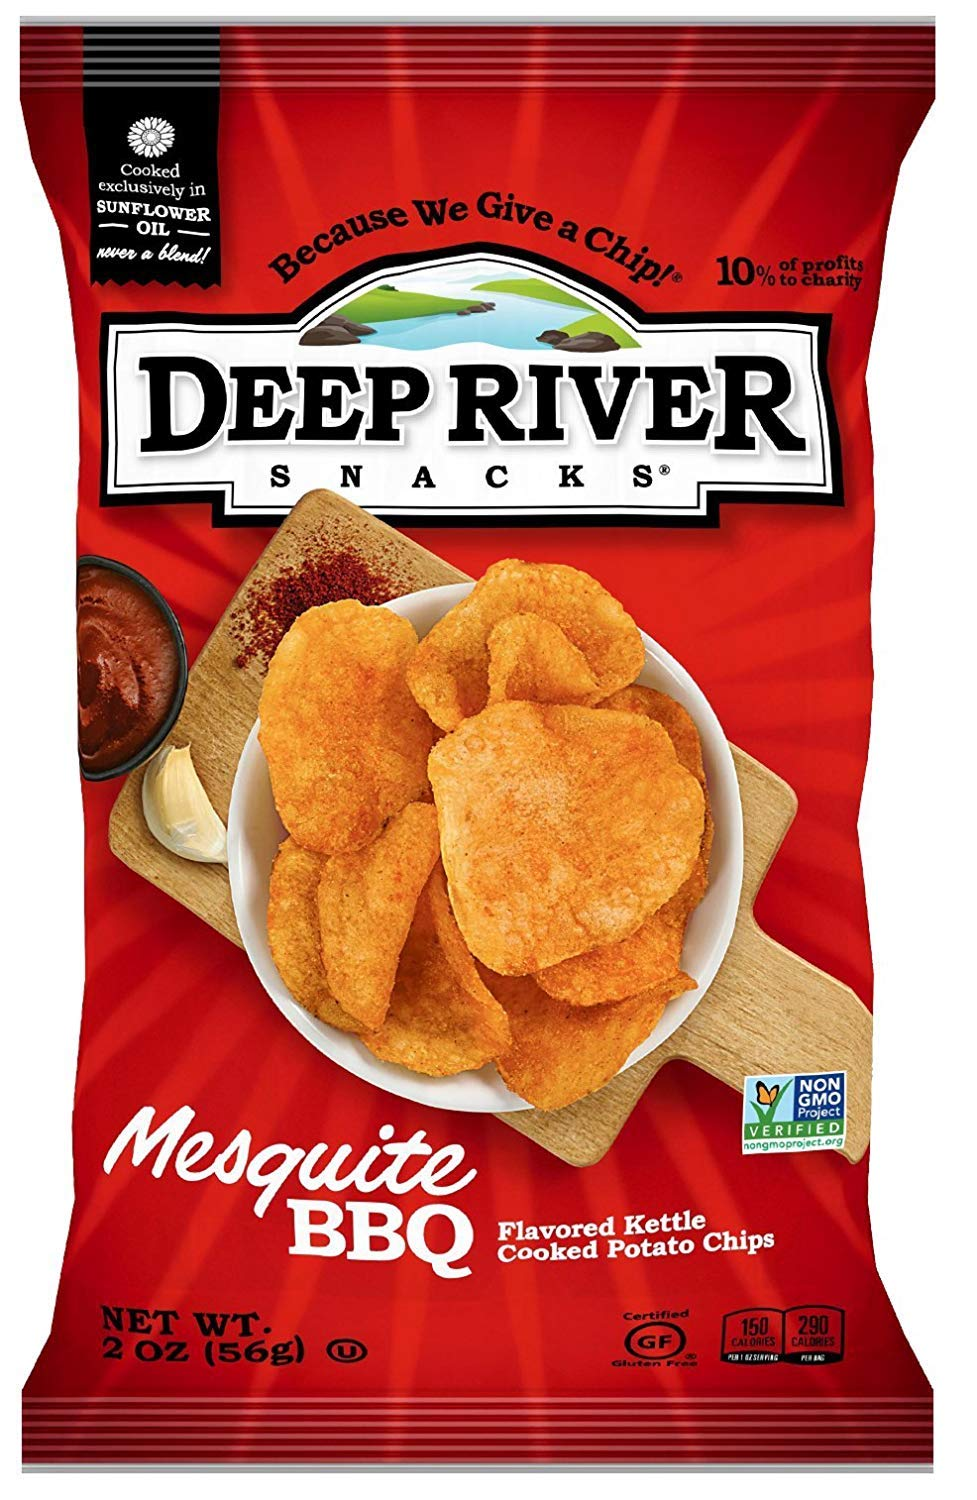 Deep River Snacks Mesquite BBQ Kettle Cooked Potato Chips, 2-Ounce (Pack of 24) (4 pack) by Deep River